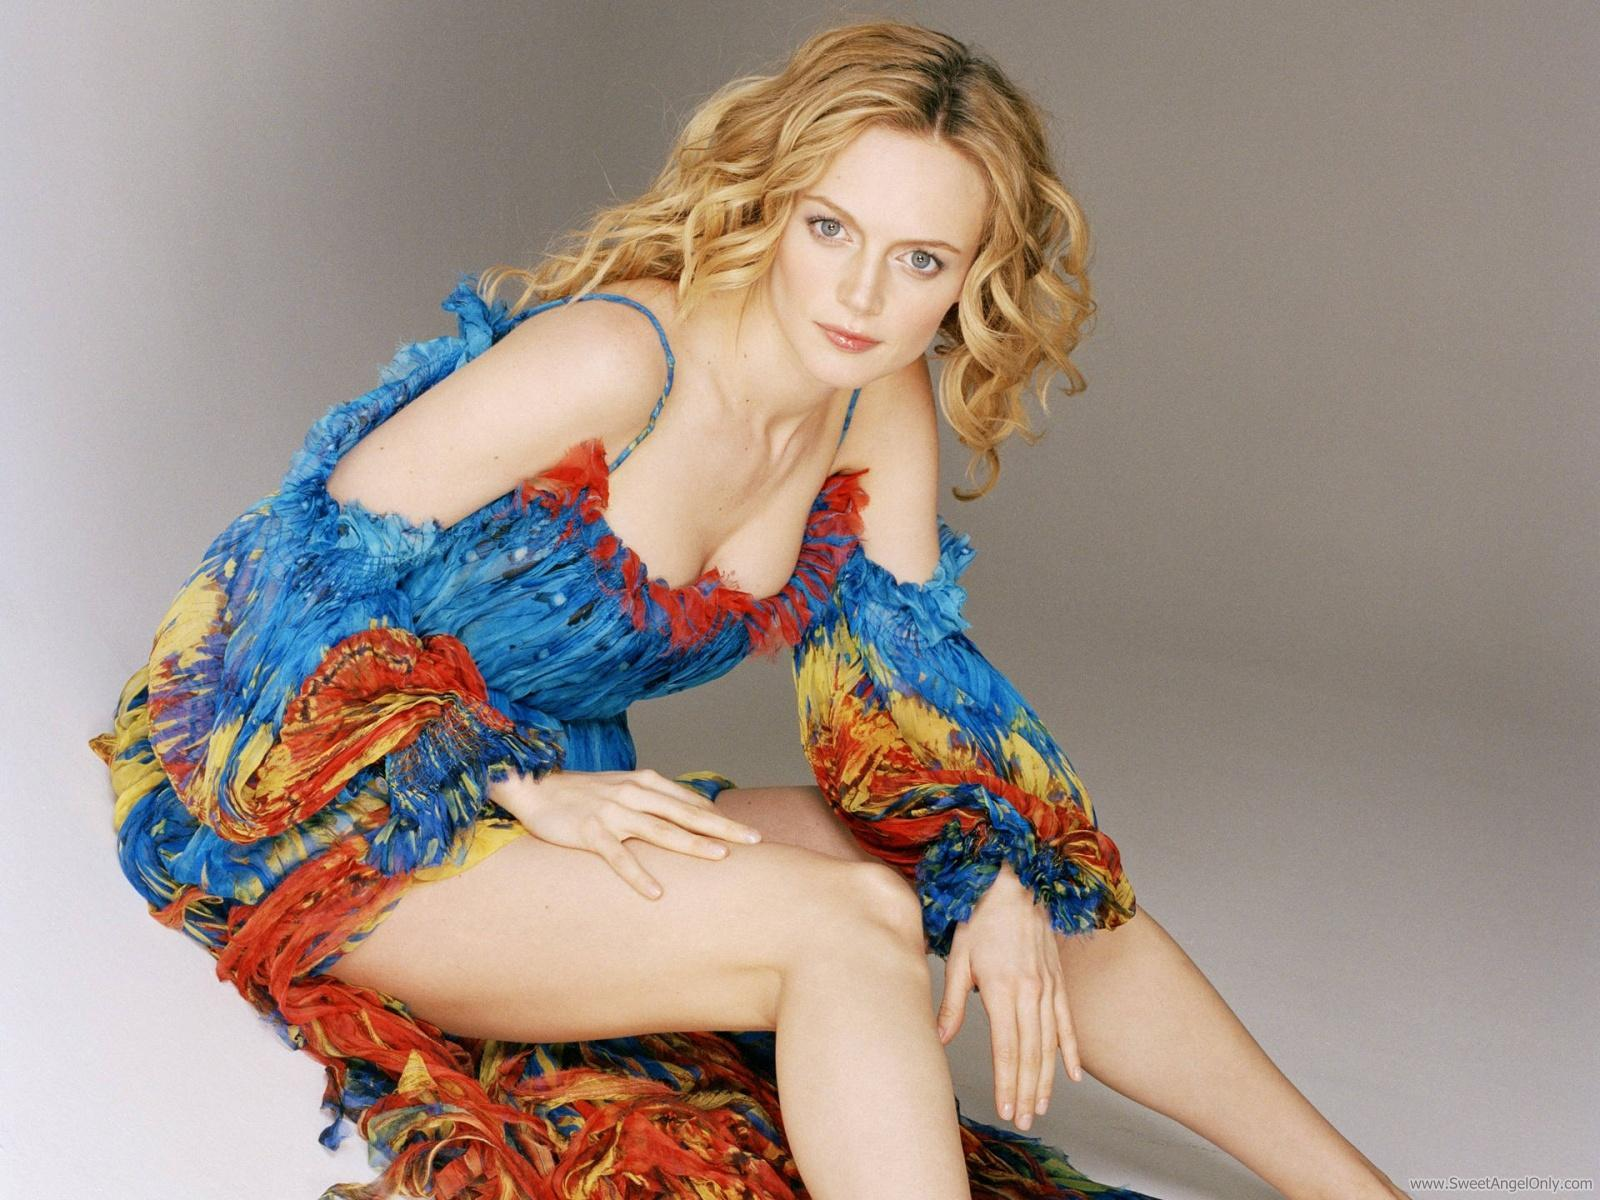 http://1.bp.blogspot.com/-YhY5BRU7HJM/Tty6xuaQUxI/AAAAAAAAQnw/0M-4Hvpu6Wc/s1600/american_woman_heather_graham_wallpaper-1600x1200.jpg